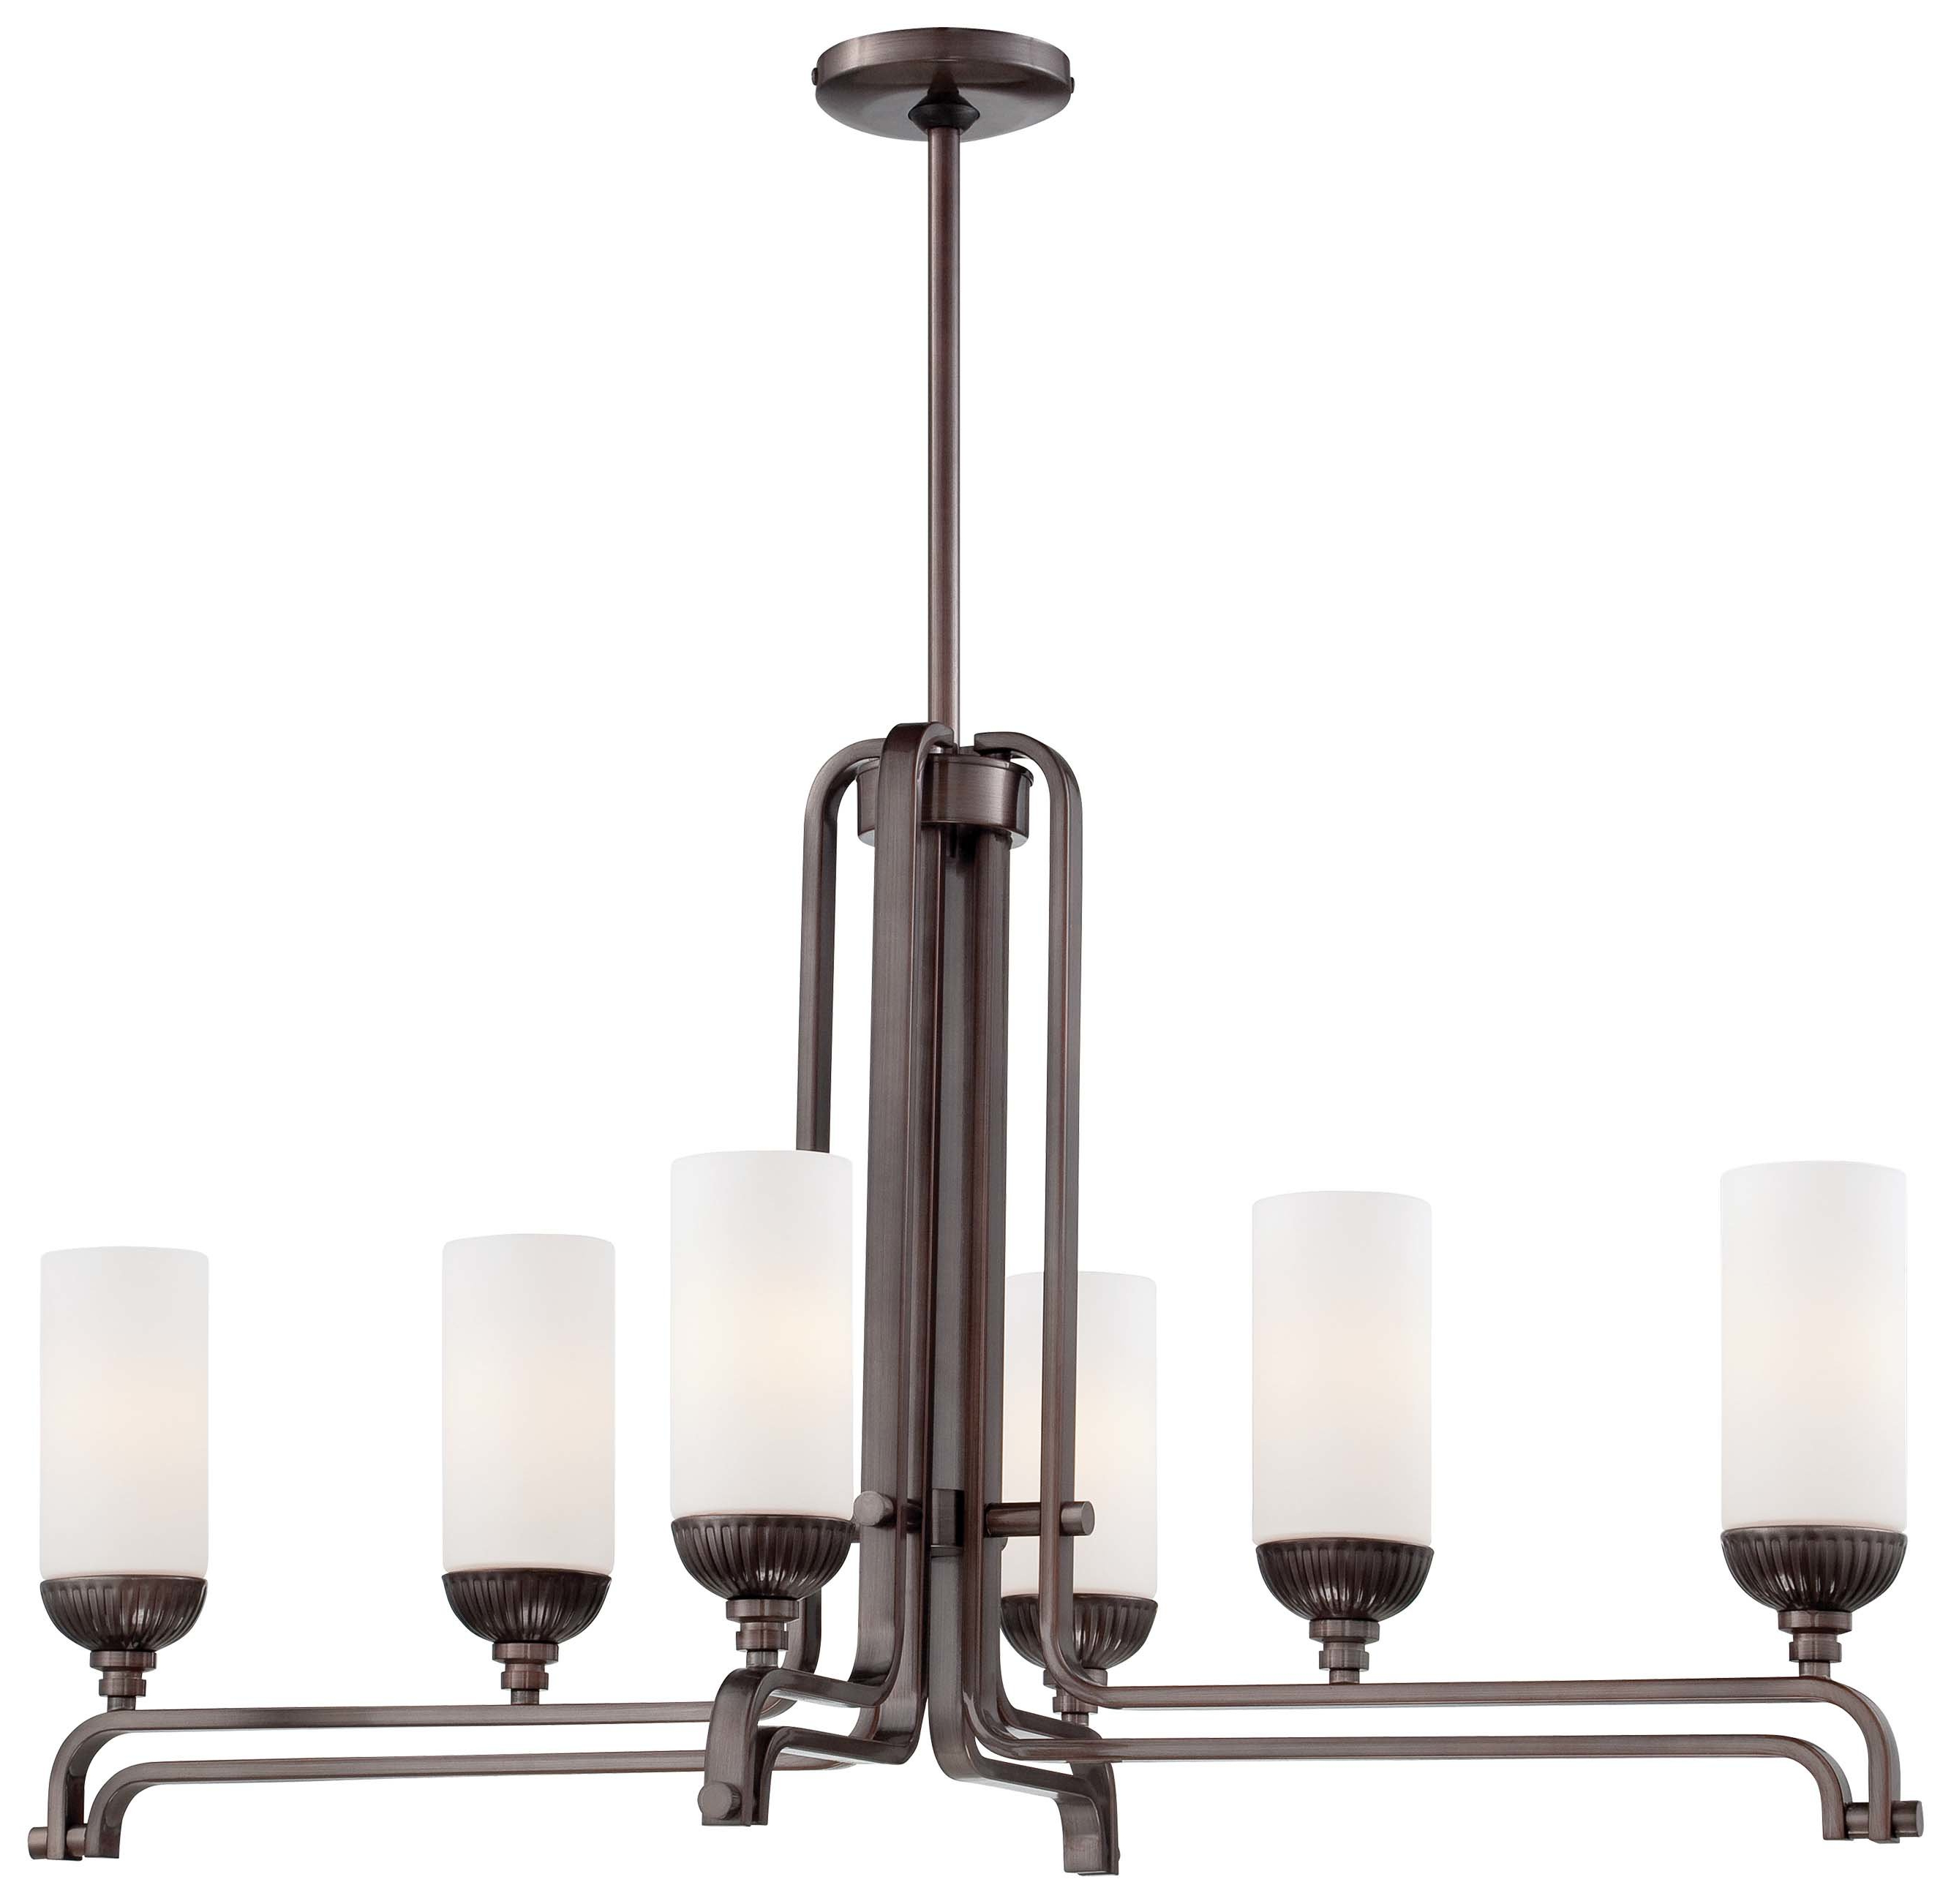 Widely Used Akash Industrial Vintage 1 Light Geometric Pendants For Industrial Kitchen Lighting You'll Love In (View 7 of 20)